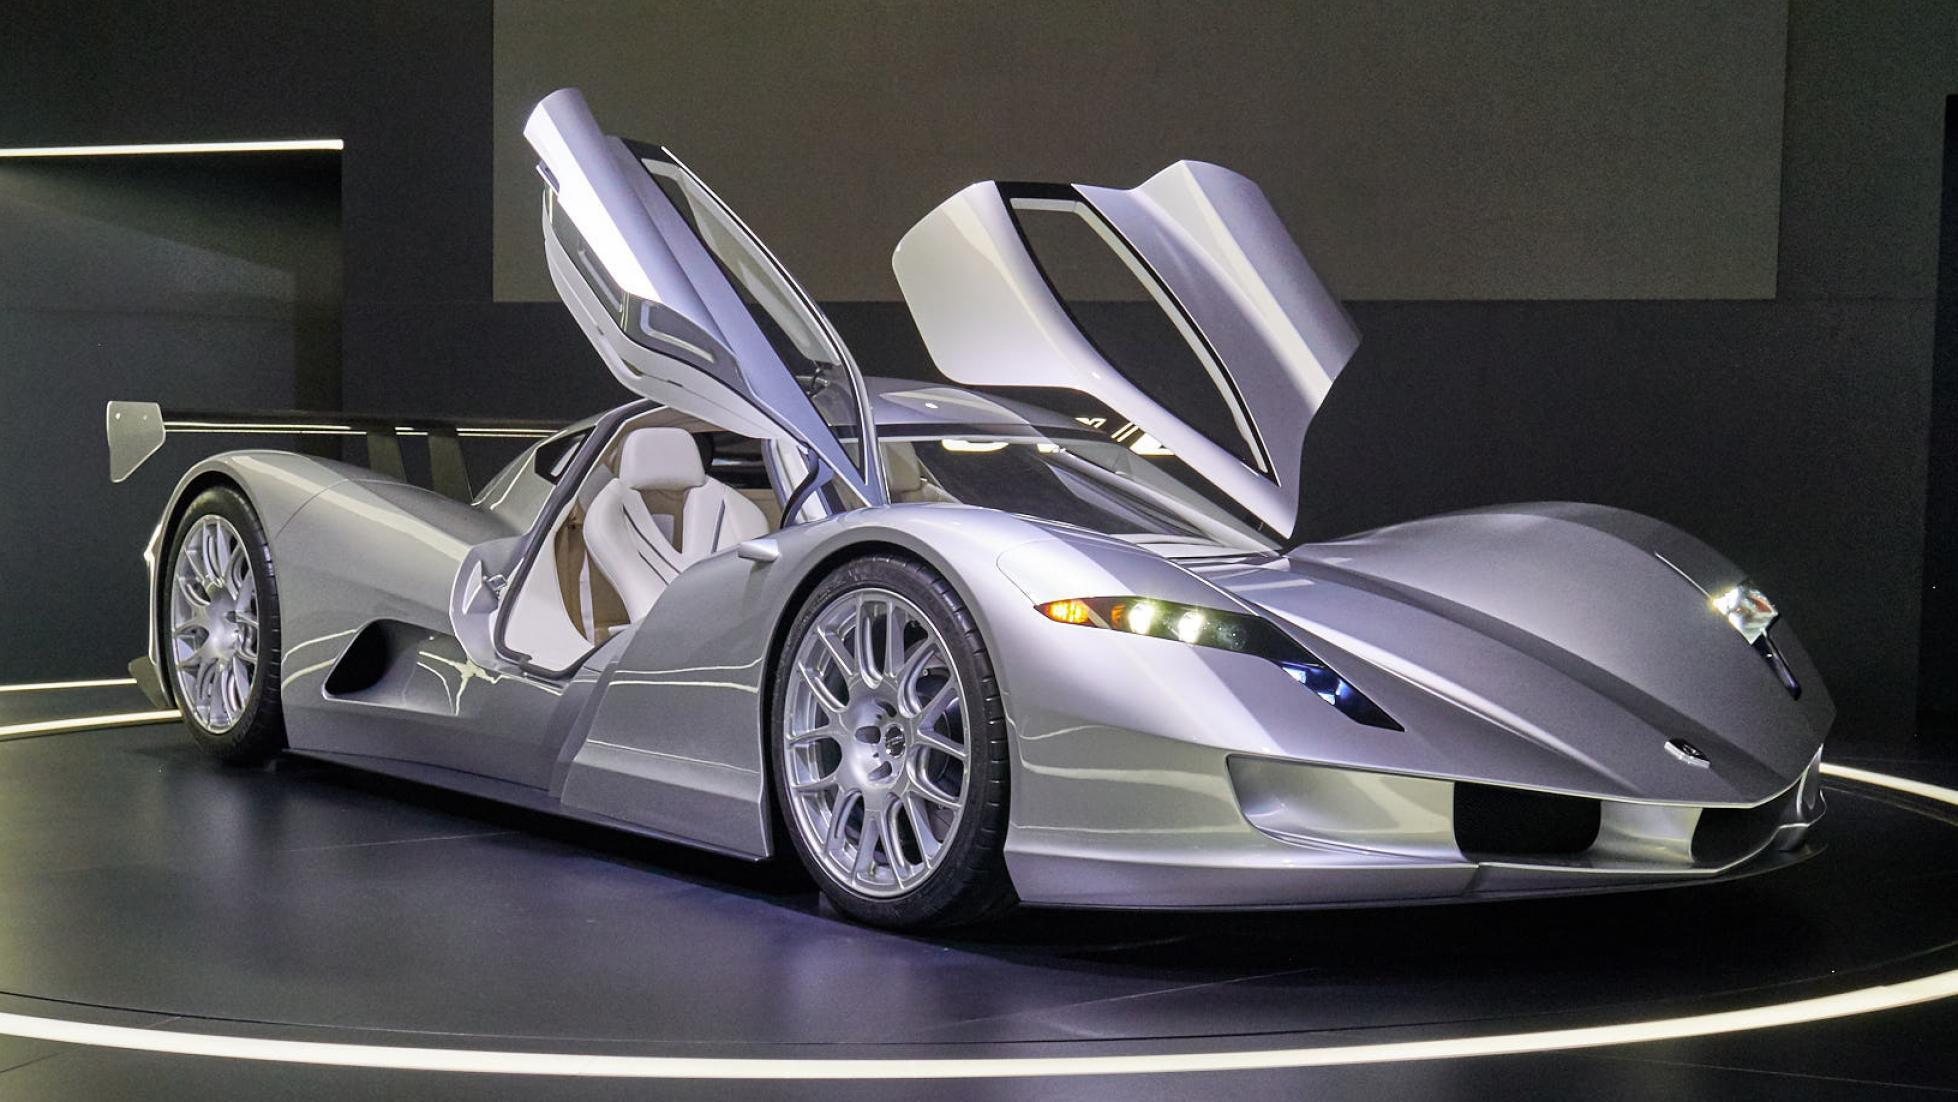 Official: the Aspark Owl electric hypercar will cost RM13.25million